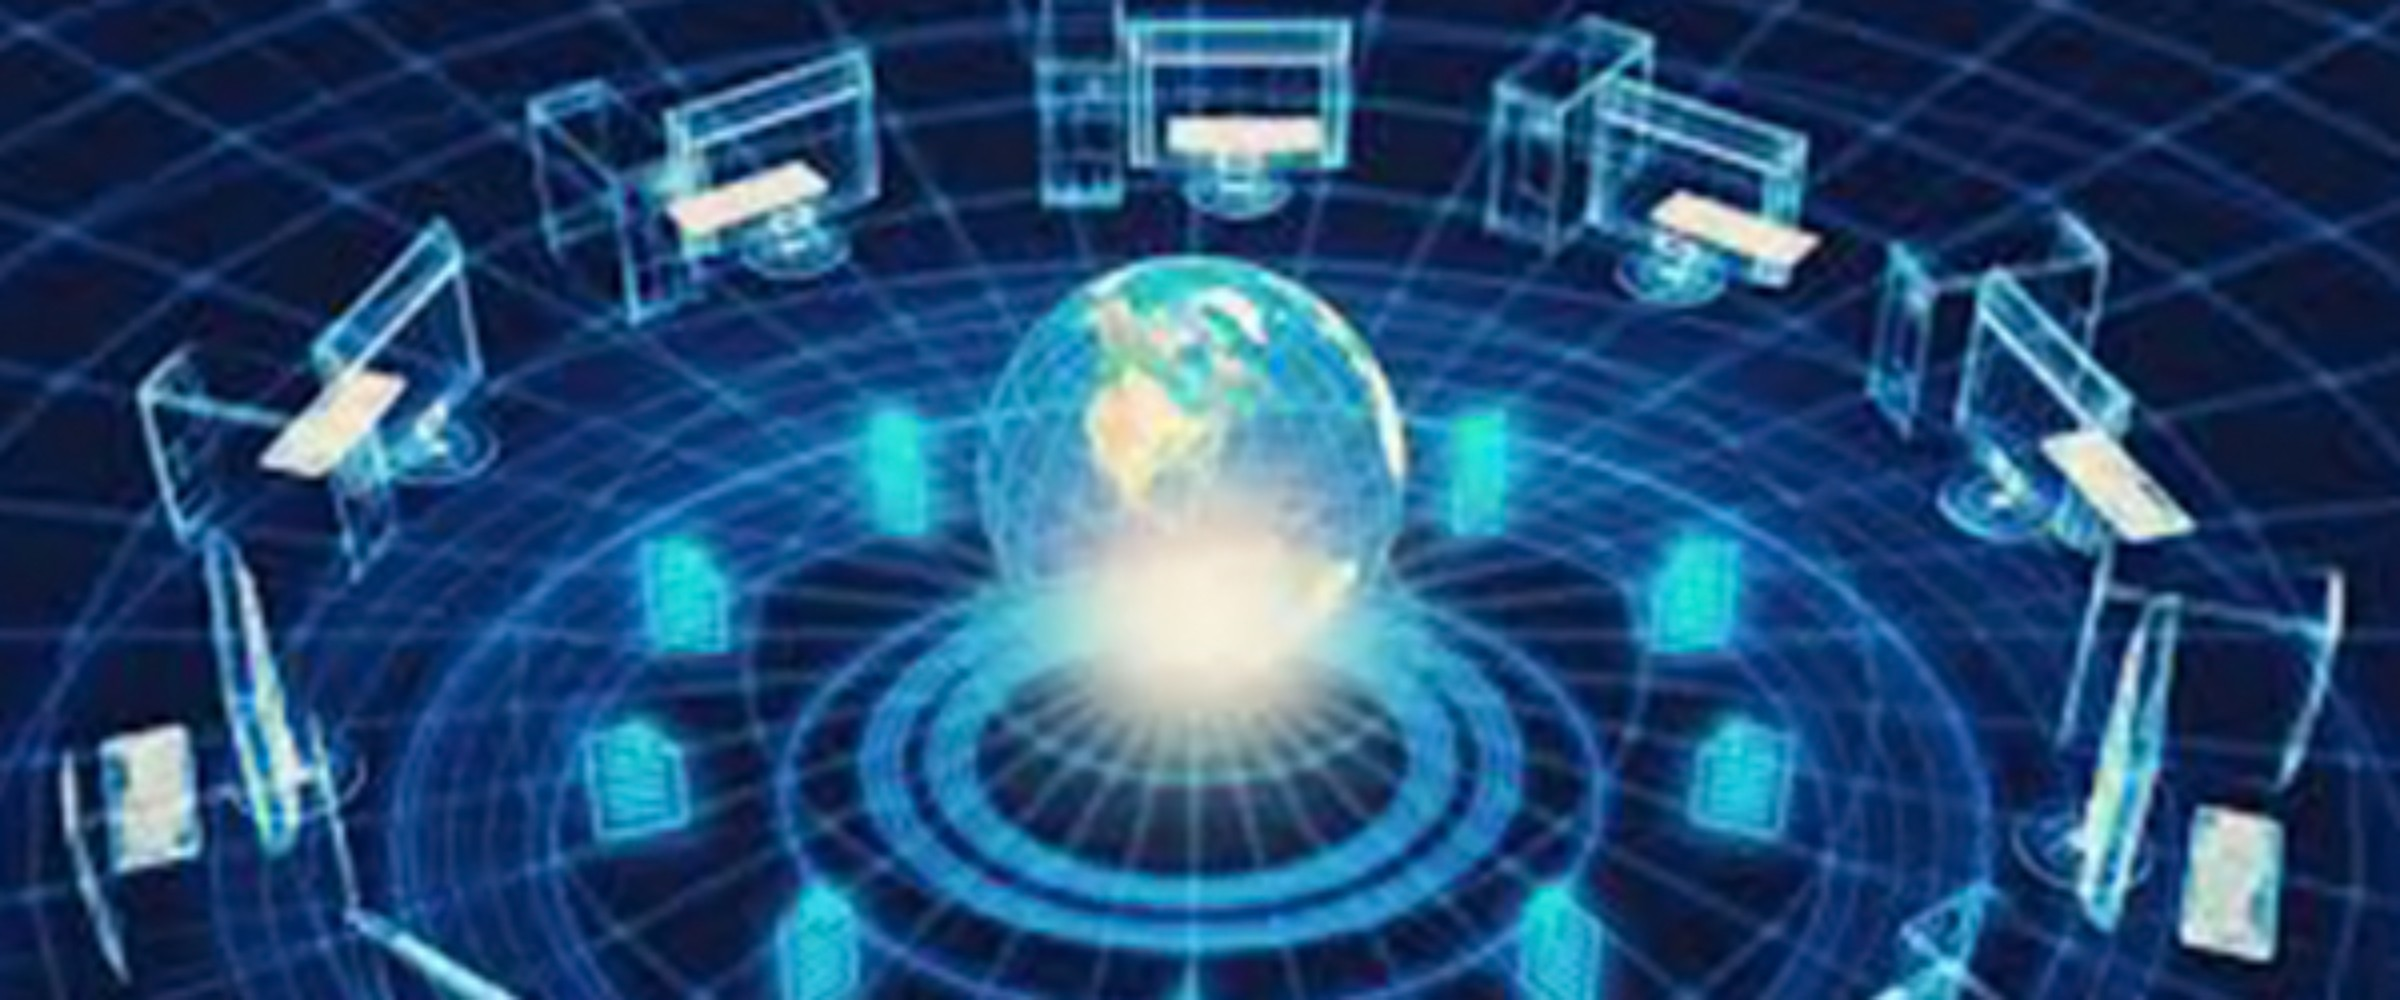 Global Secure Web Gateway Market 2019 Research in-Depth Analysis, Key Players, Market Challenges, Segmentation and Forecasts to 2025